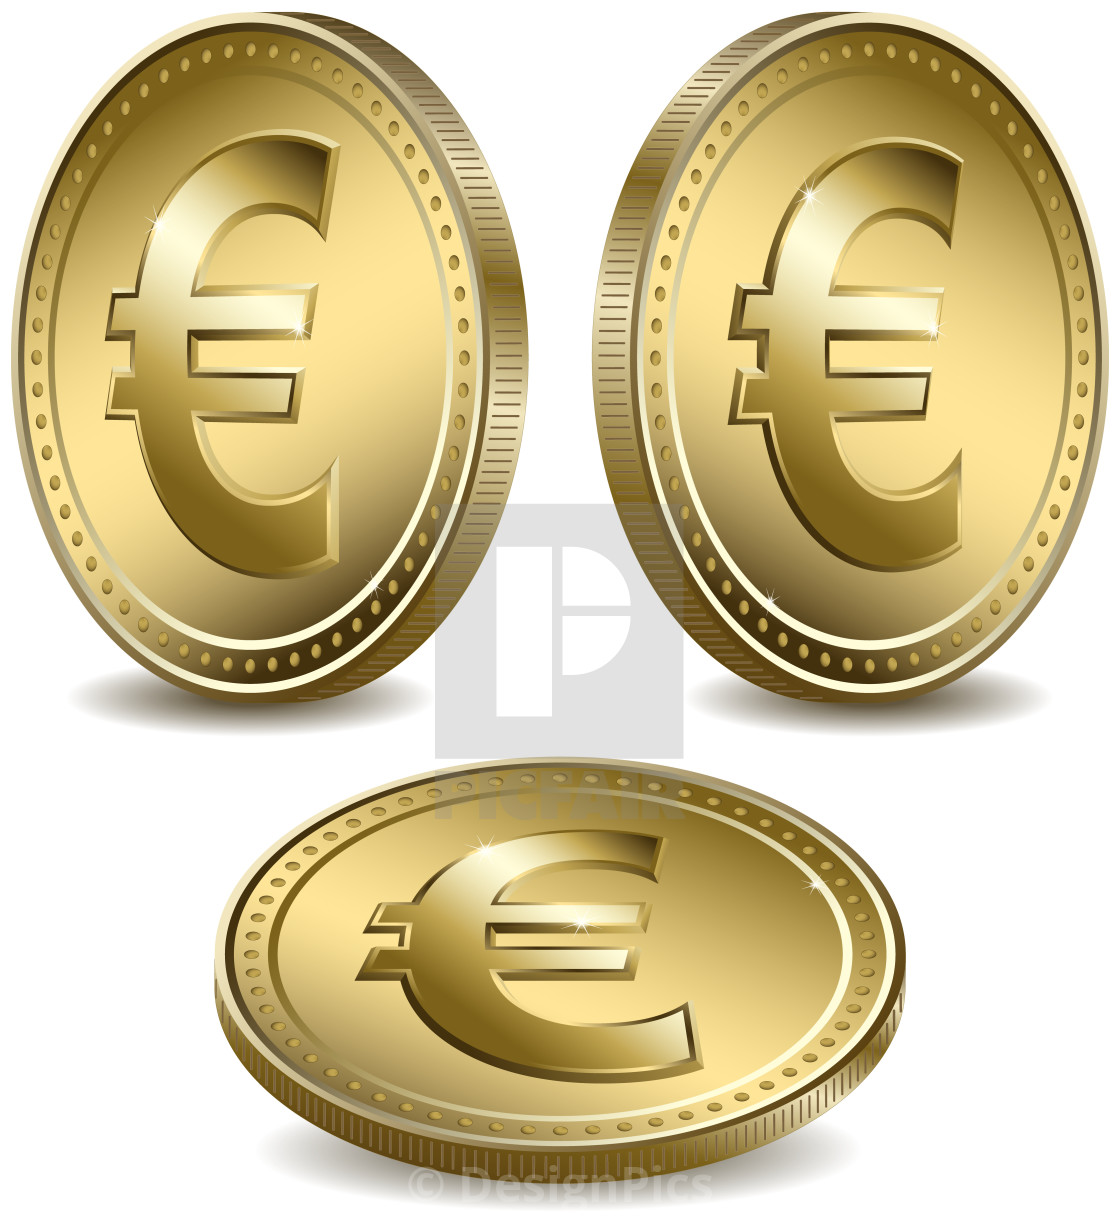 Gold Coins With The Euro Symbol License For 3759 On Picfair